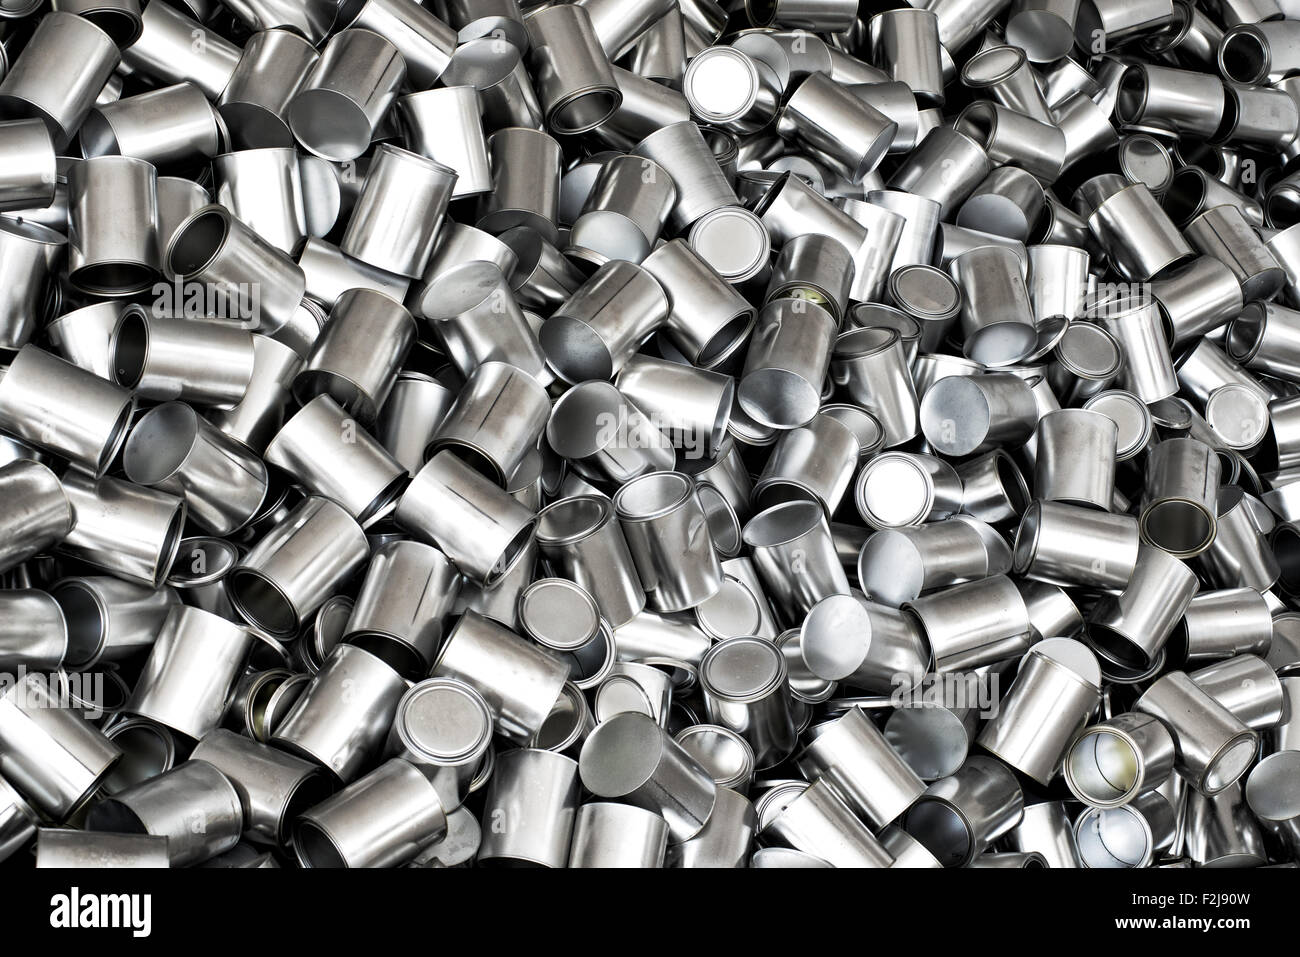 Background texture of new empty tins for canning food products viewed from overhead in a full frame view, nutrition - Stock Image